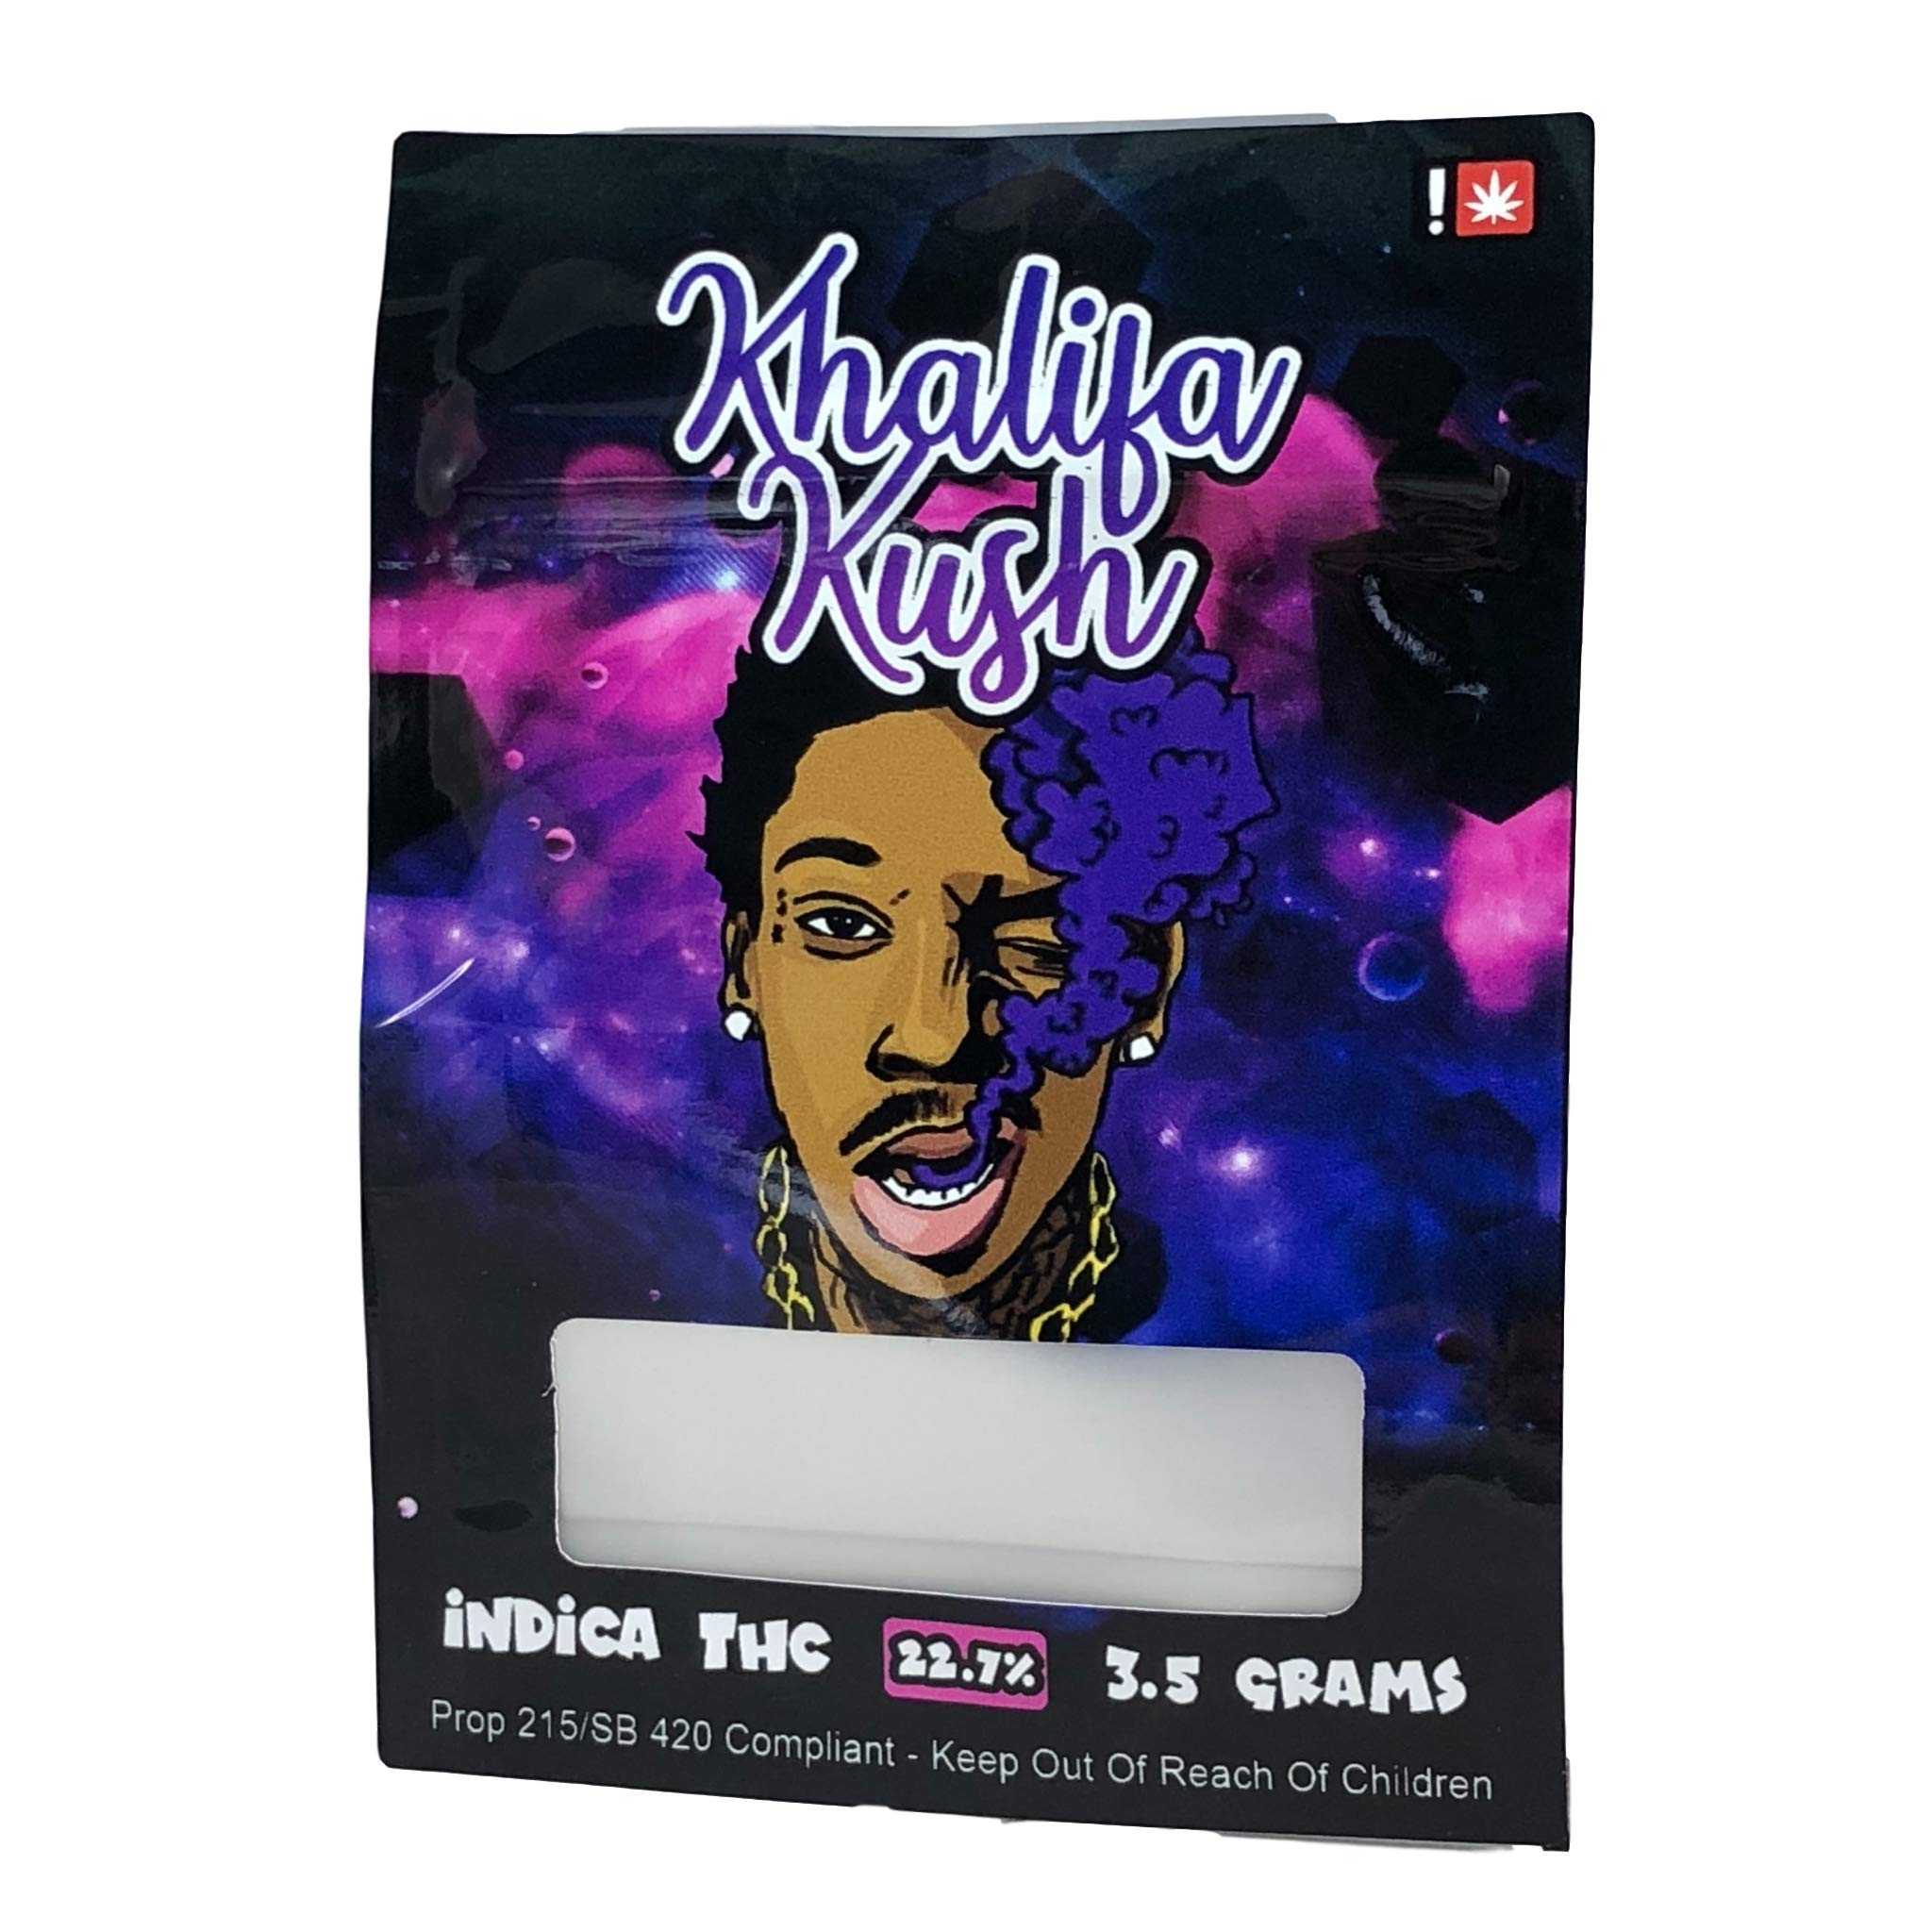 KHALIFA KUSH Stickers & Mylar Barrier Bag - 3.5 GRAM - Heat Sealable - (Zip Lock Canna Bags, Billy Kimber, Paris OG) (50)